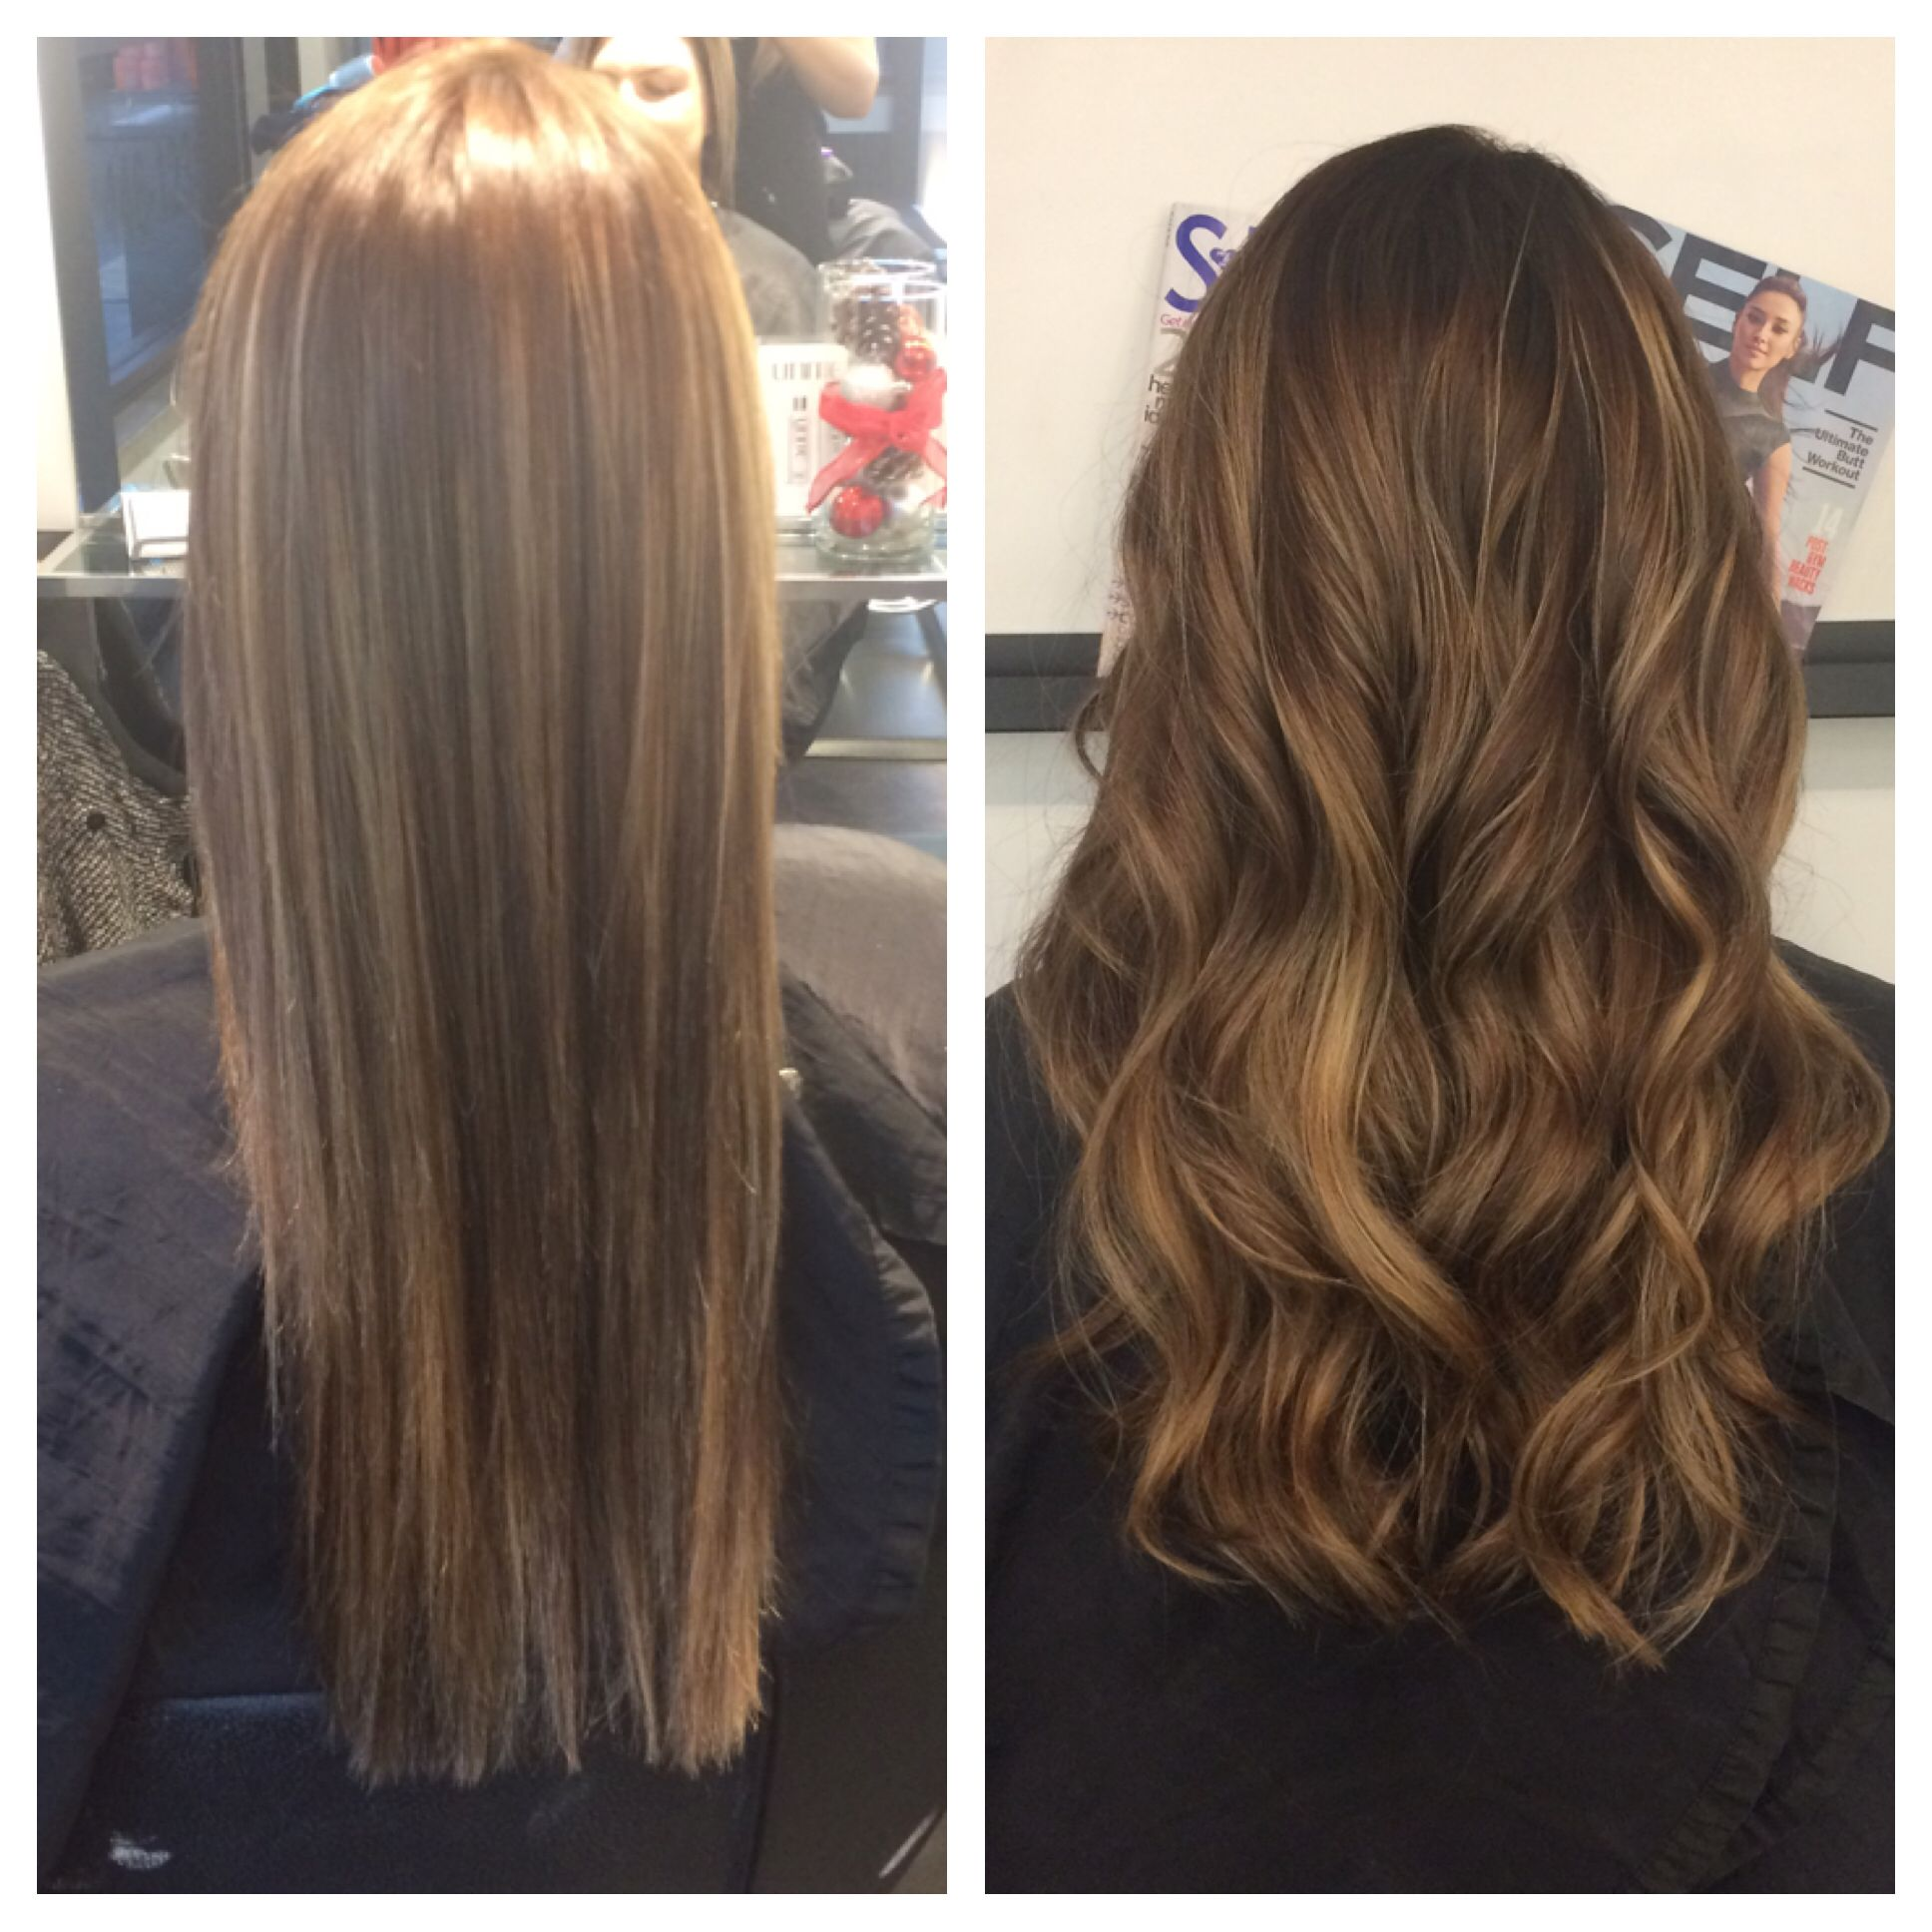 Golden Blonde Balayage On Dark Brown Hair Straight Vs Curly Balayage Hair Blonde Long Balayage Hair Blonde Blonde Balayage